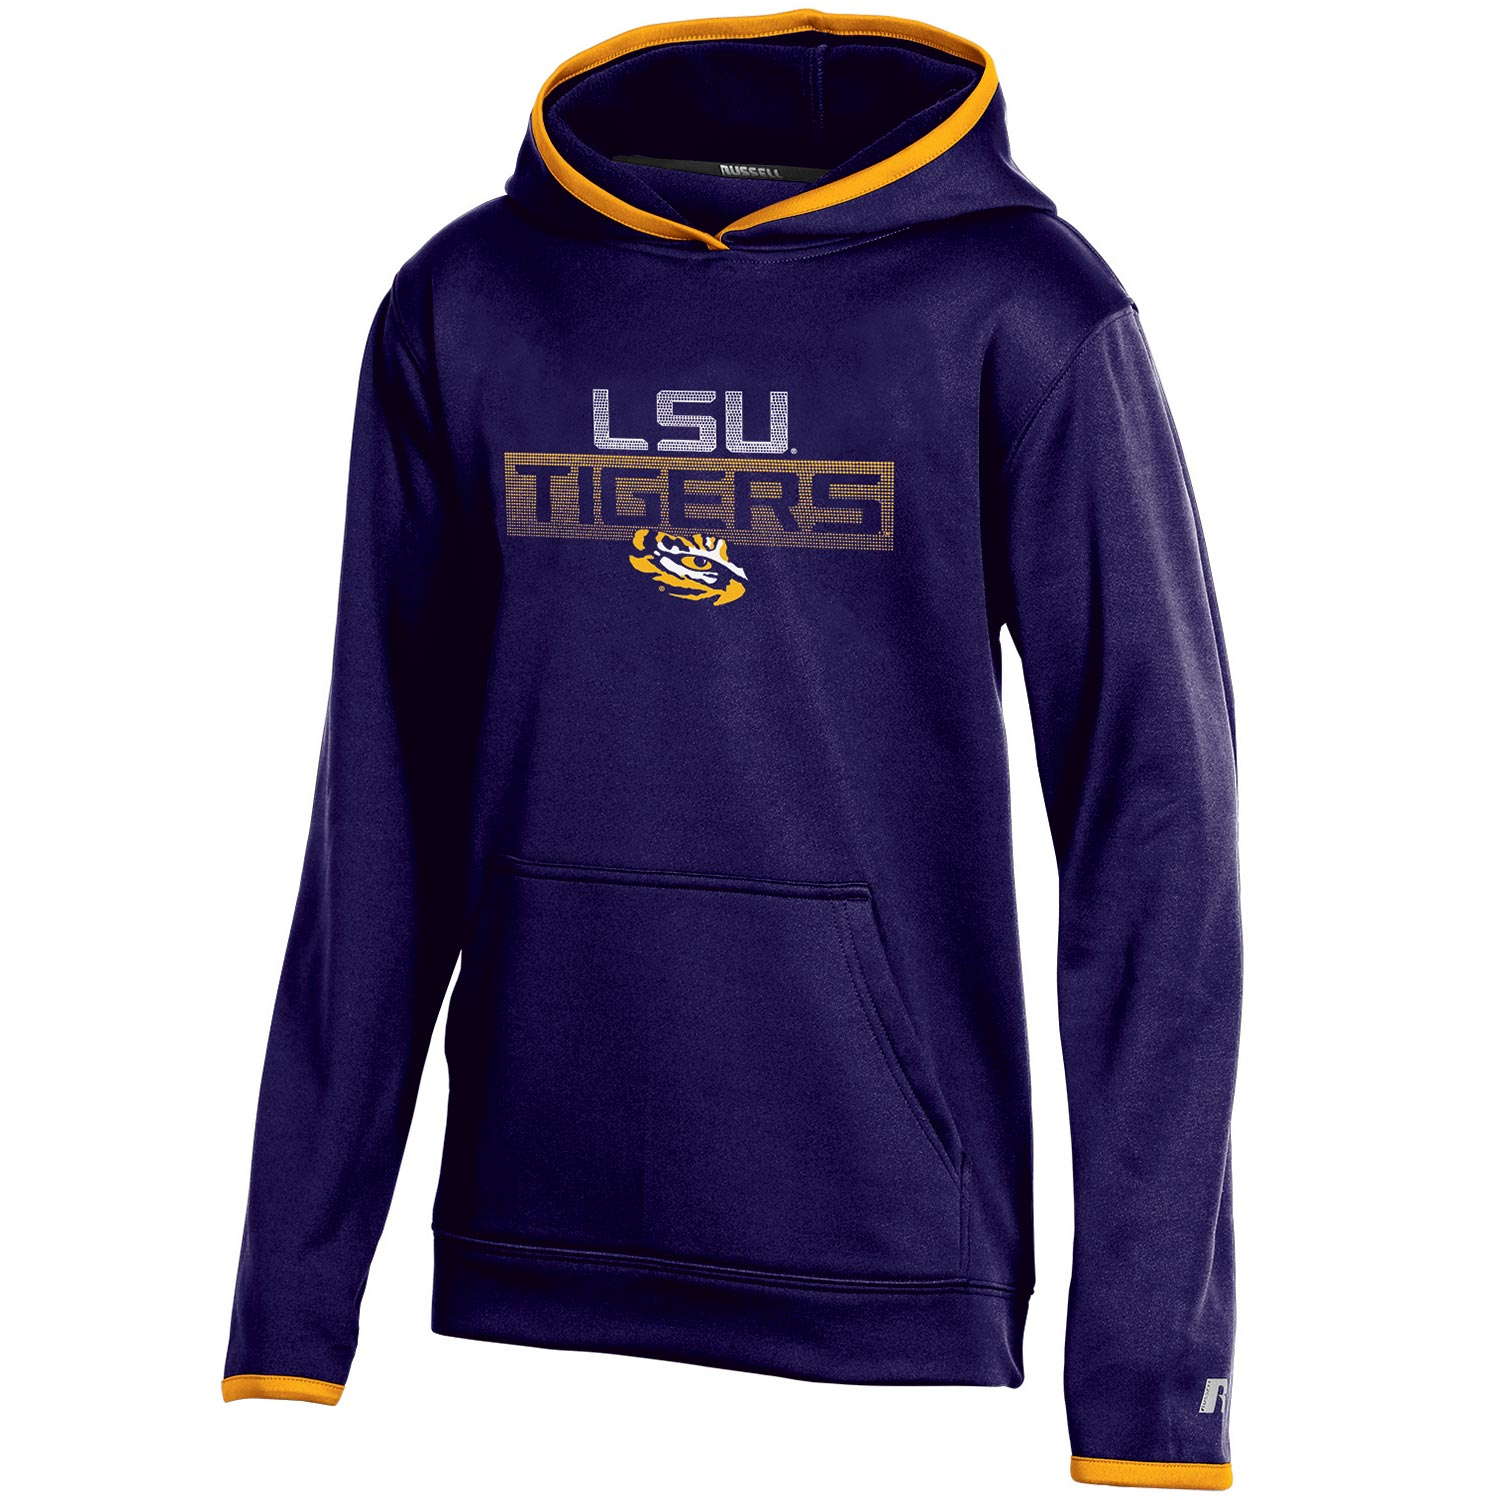 Youth Russell Purple LSU Tigers Pullover Hoodie